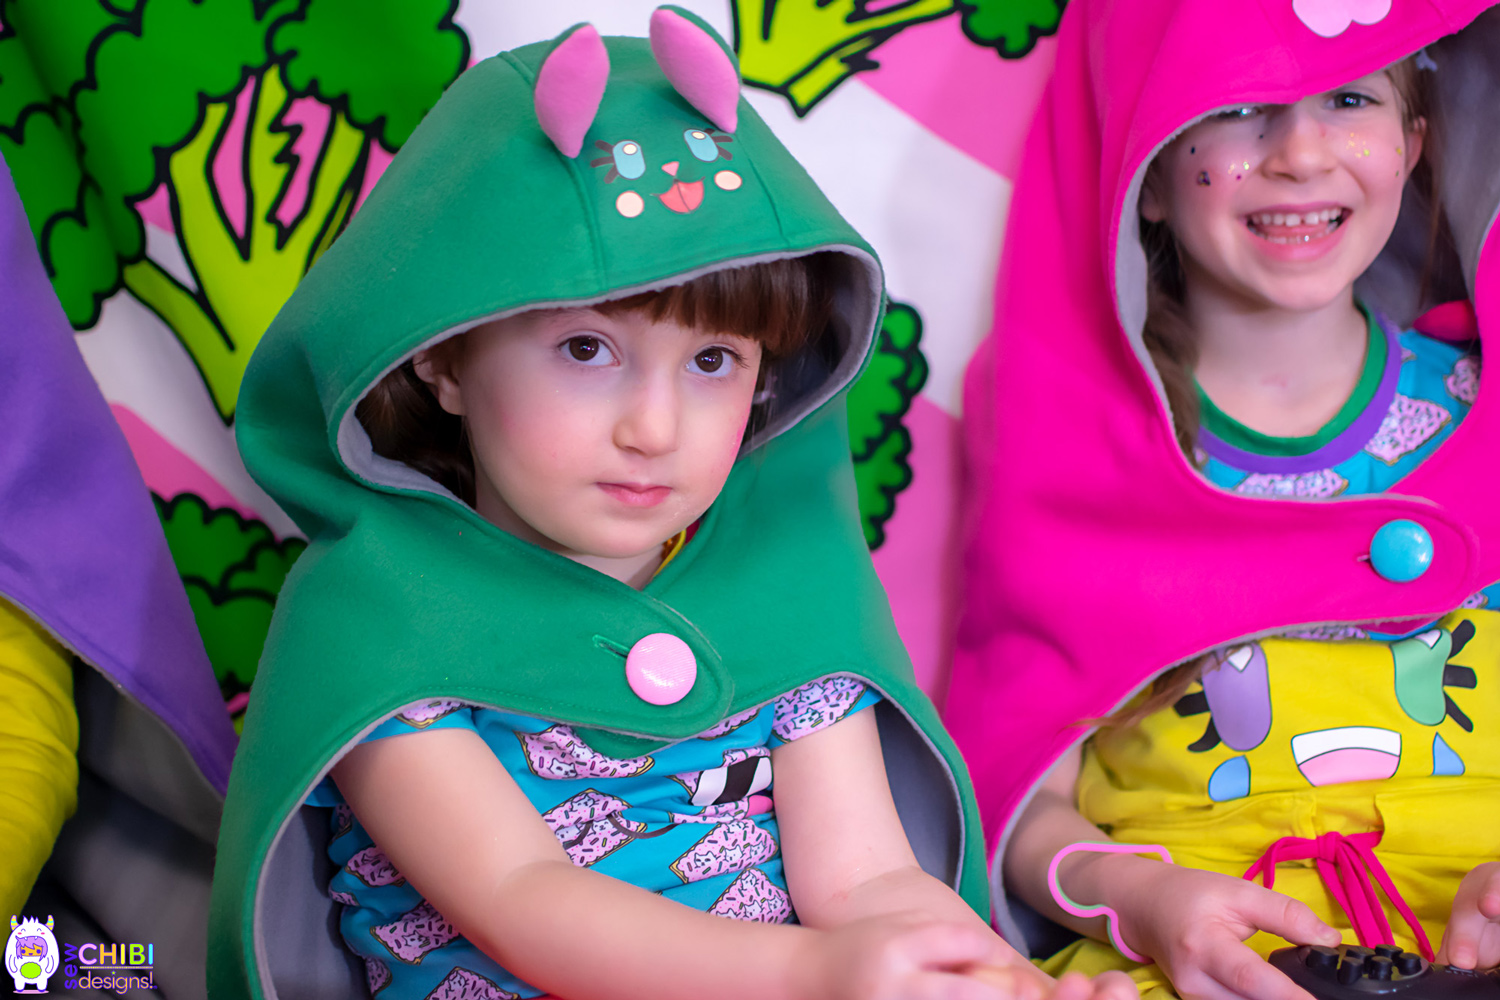 Baka the Hooded Blanket PDF Pattern by Sew Chibi Designs $10 sizes 12M-16Y (or adult!) for boys AND girls!